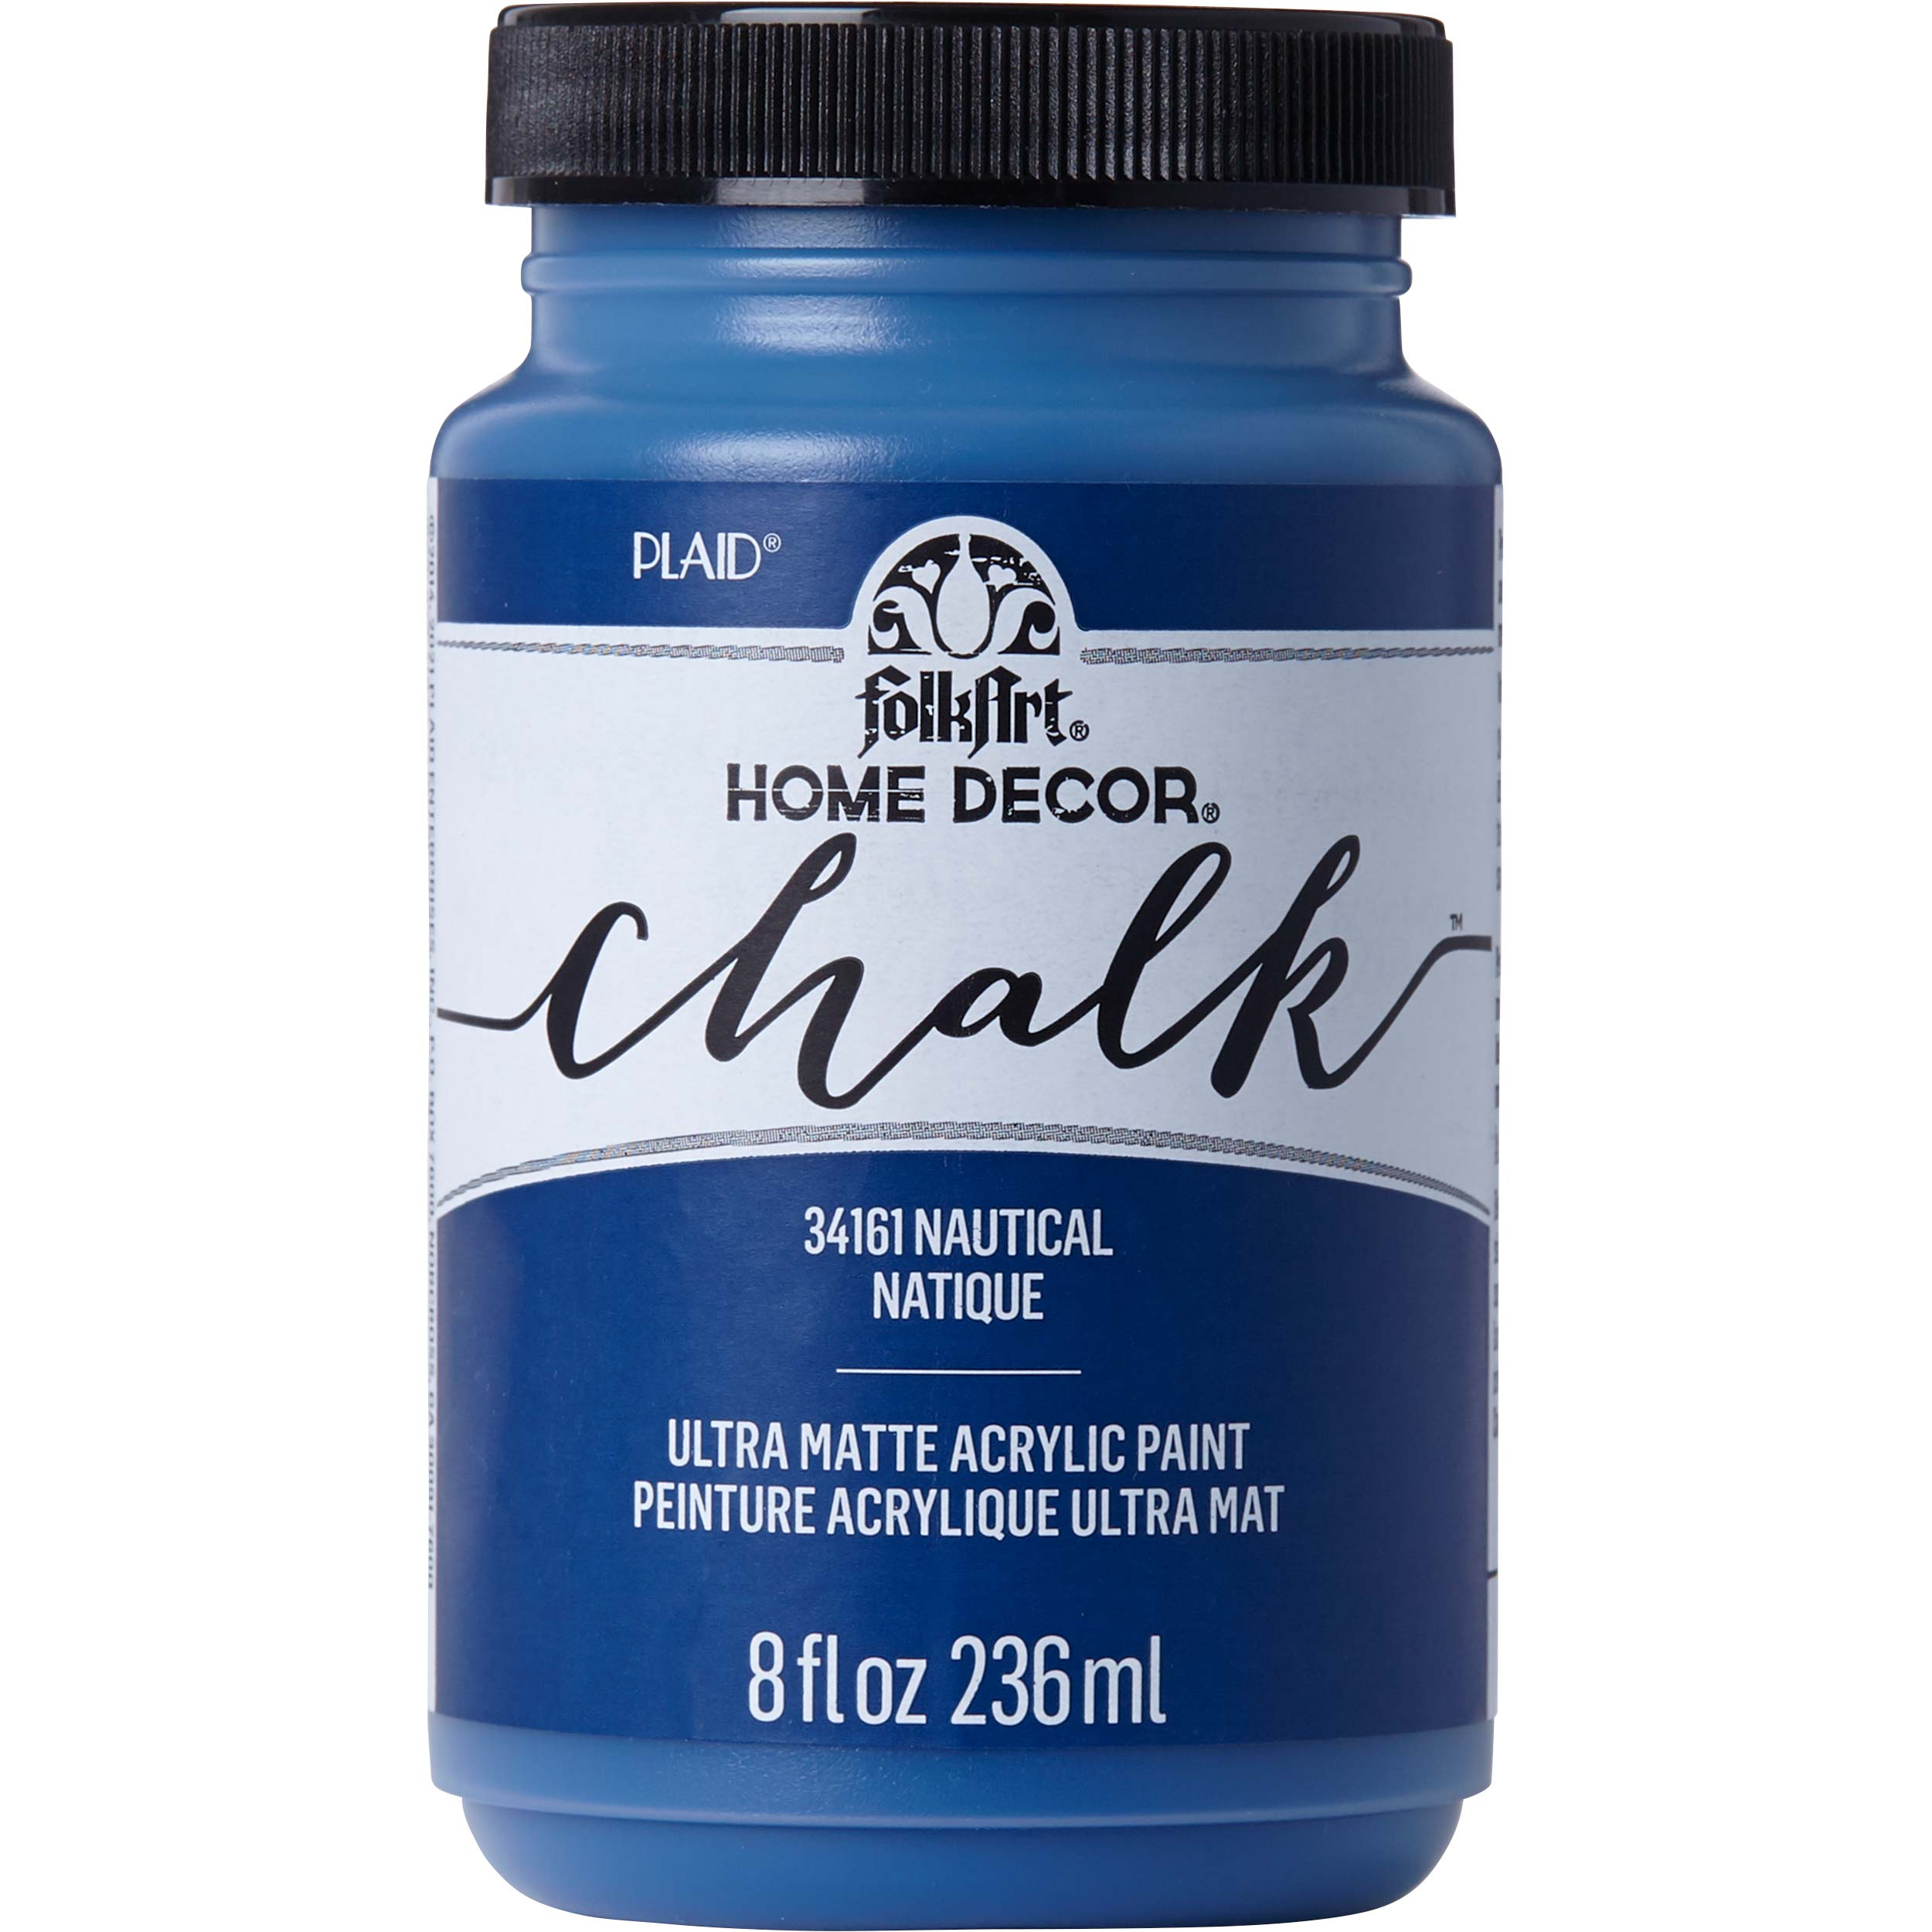 FolkArt ® Home Decor™ Chalk - Nautical, 8 oz. - 34161